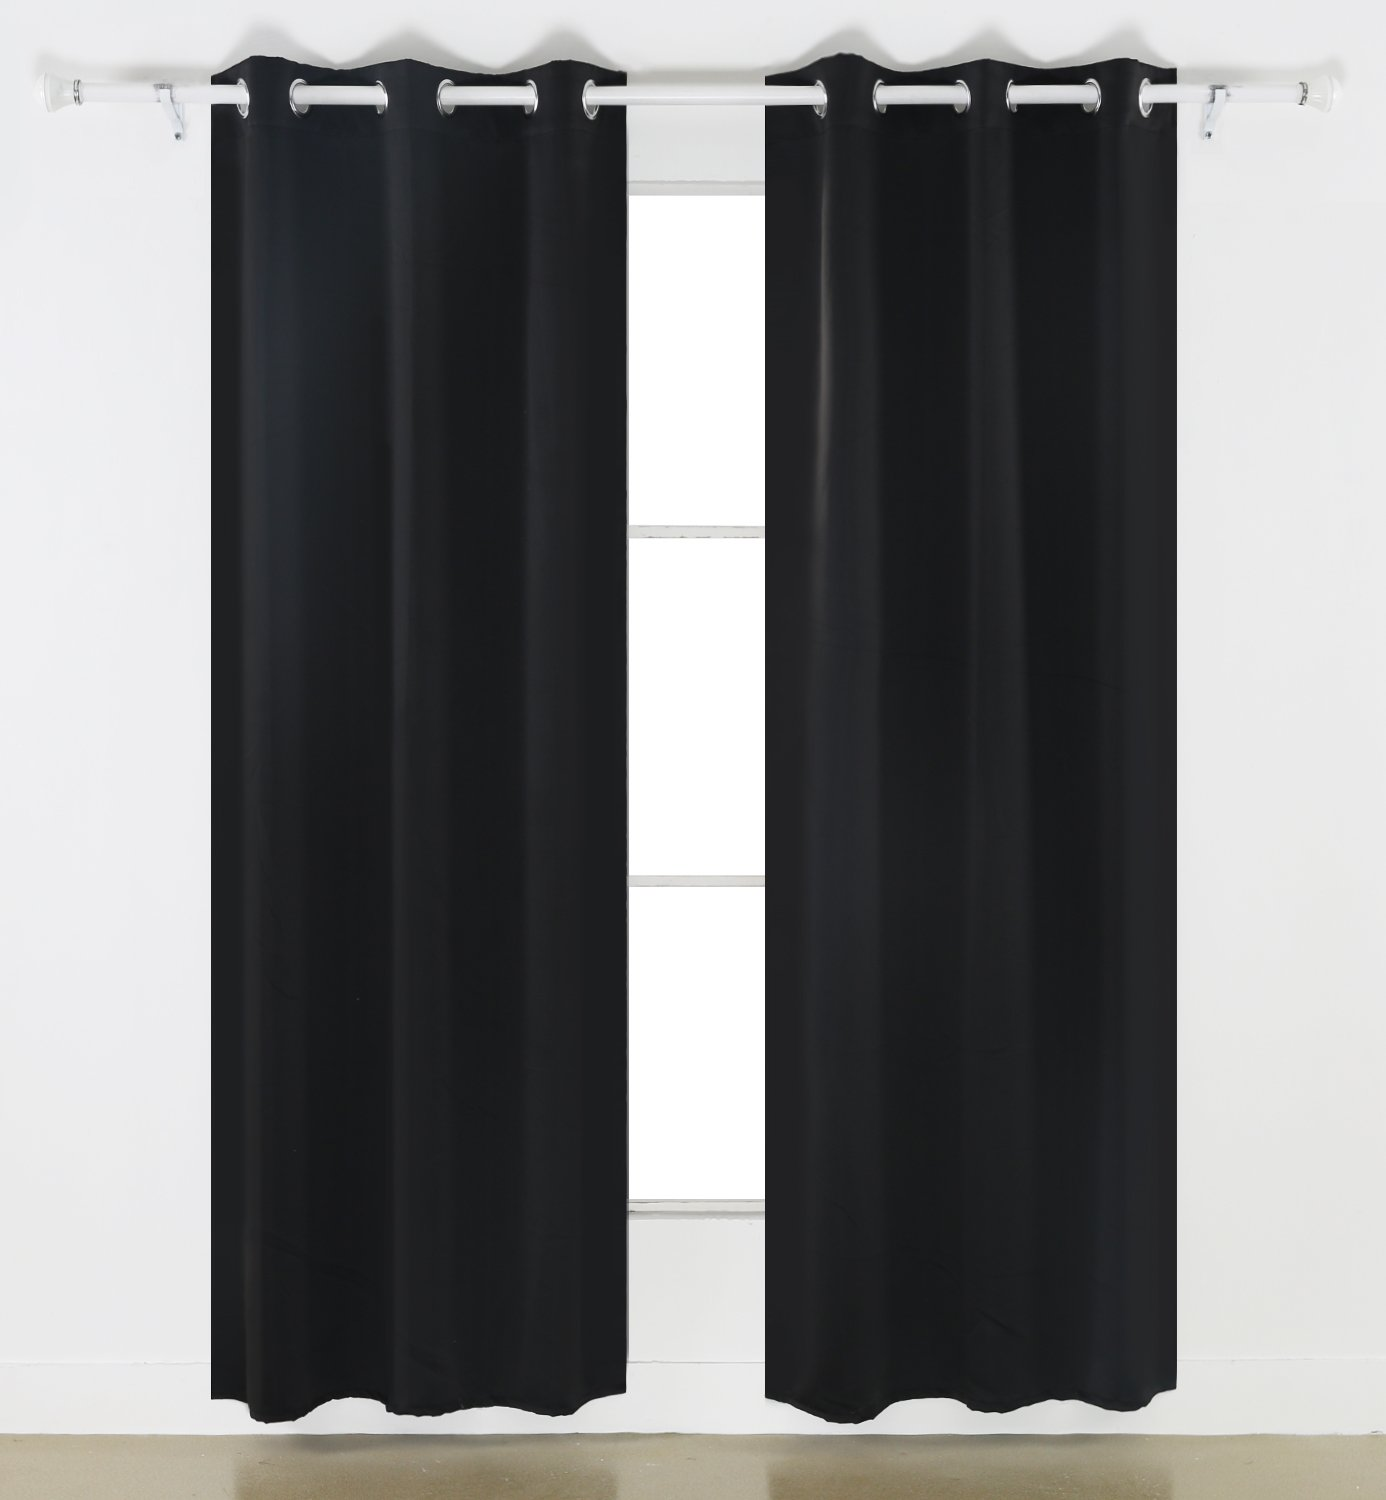 Cafe curtains for bedroom - Deconovo Room Darkening Thermal Insulated Blackout Grommet Window Curtain For Living Room Black 42x63 Inch 1 Panel